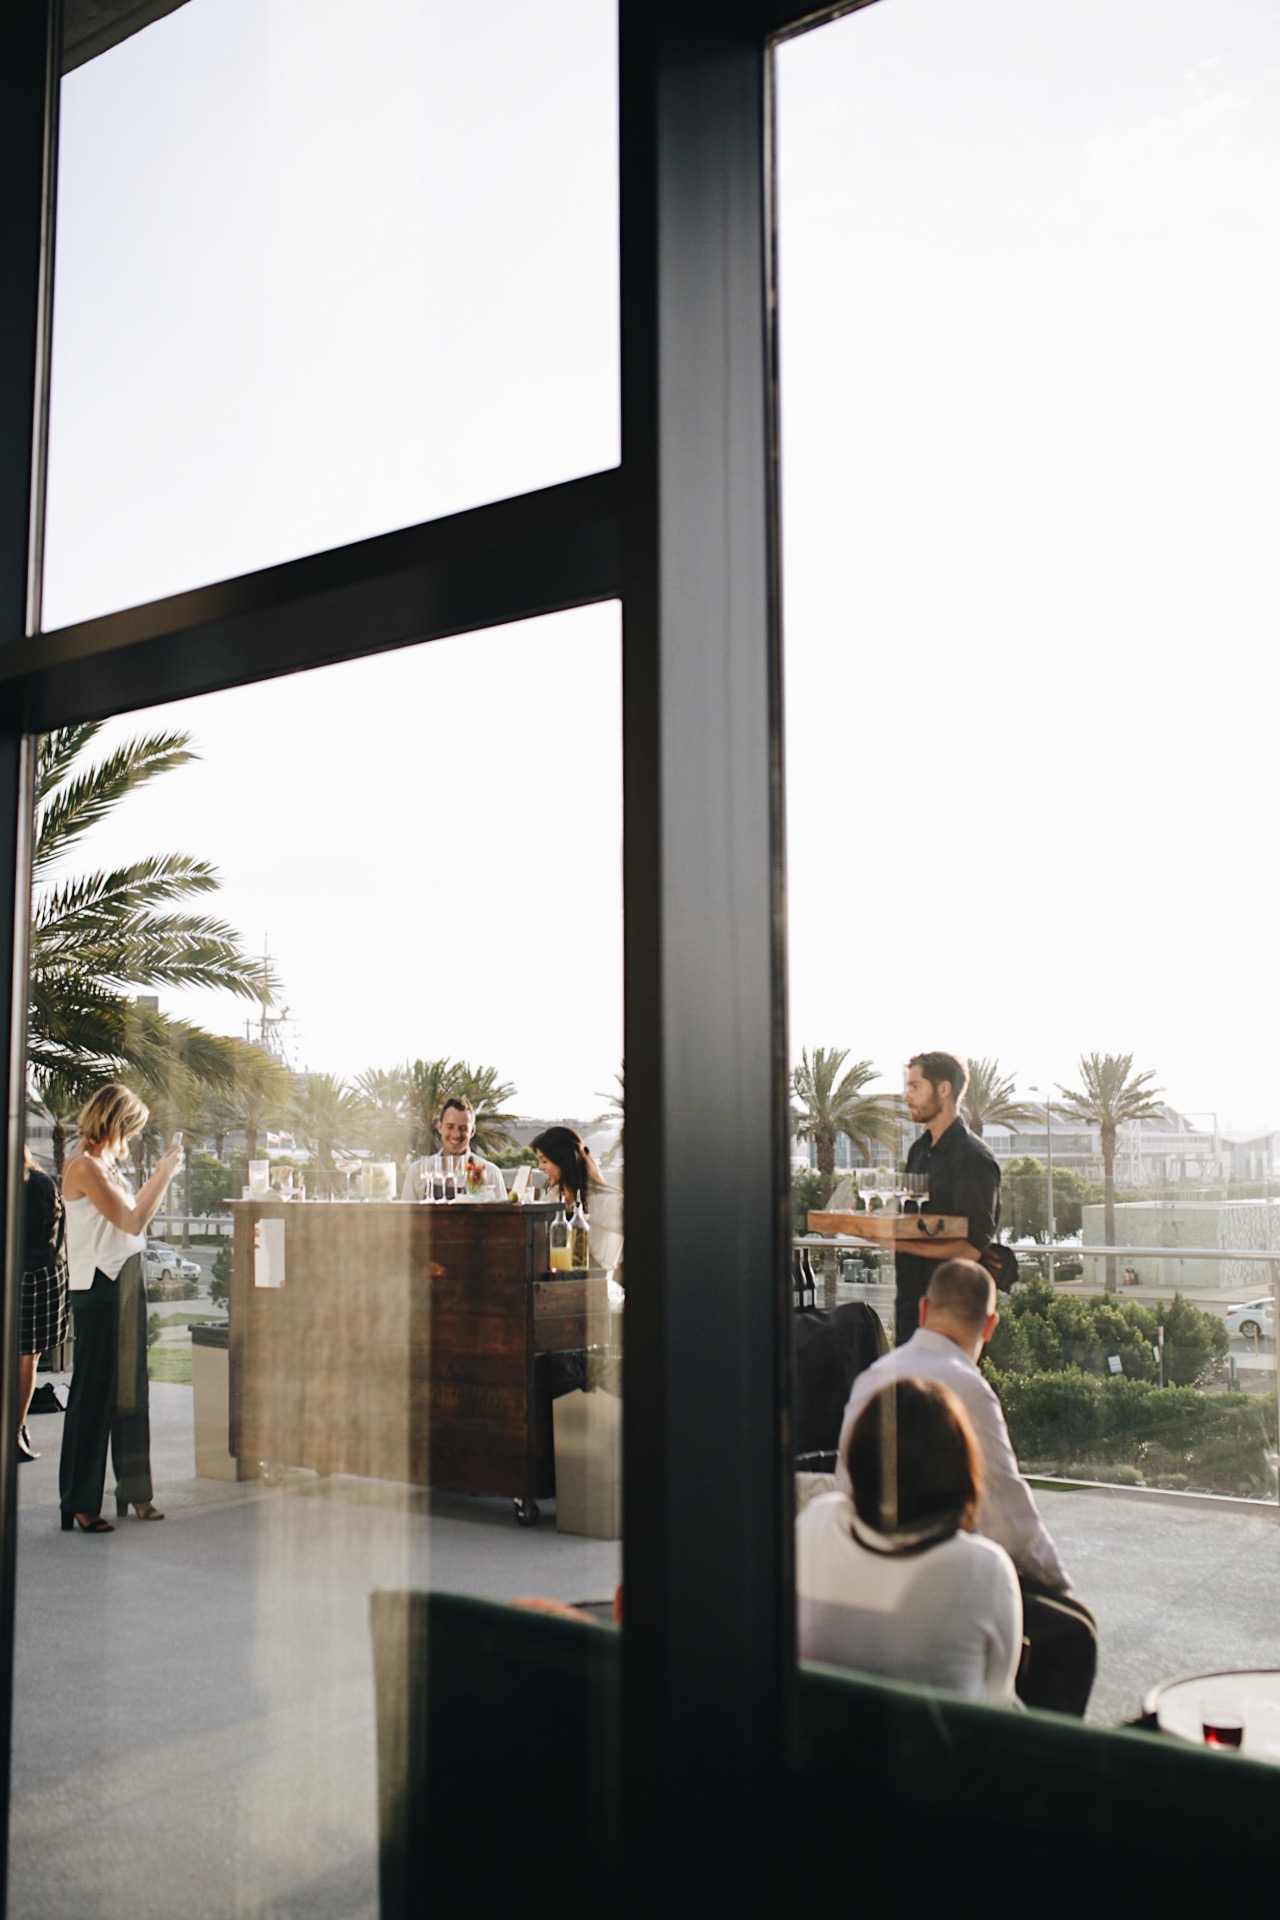 bayfront views for days - whether you're out on the terrace or inside one of the interior gathering spaces, you can see the cruise ships come in and sailboats passing by.